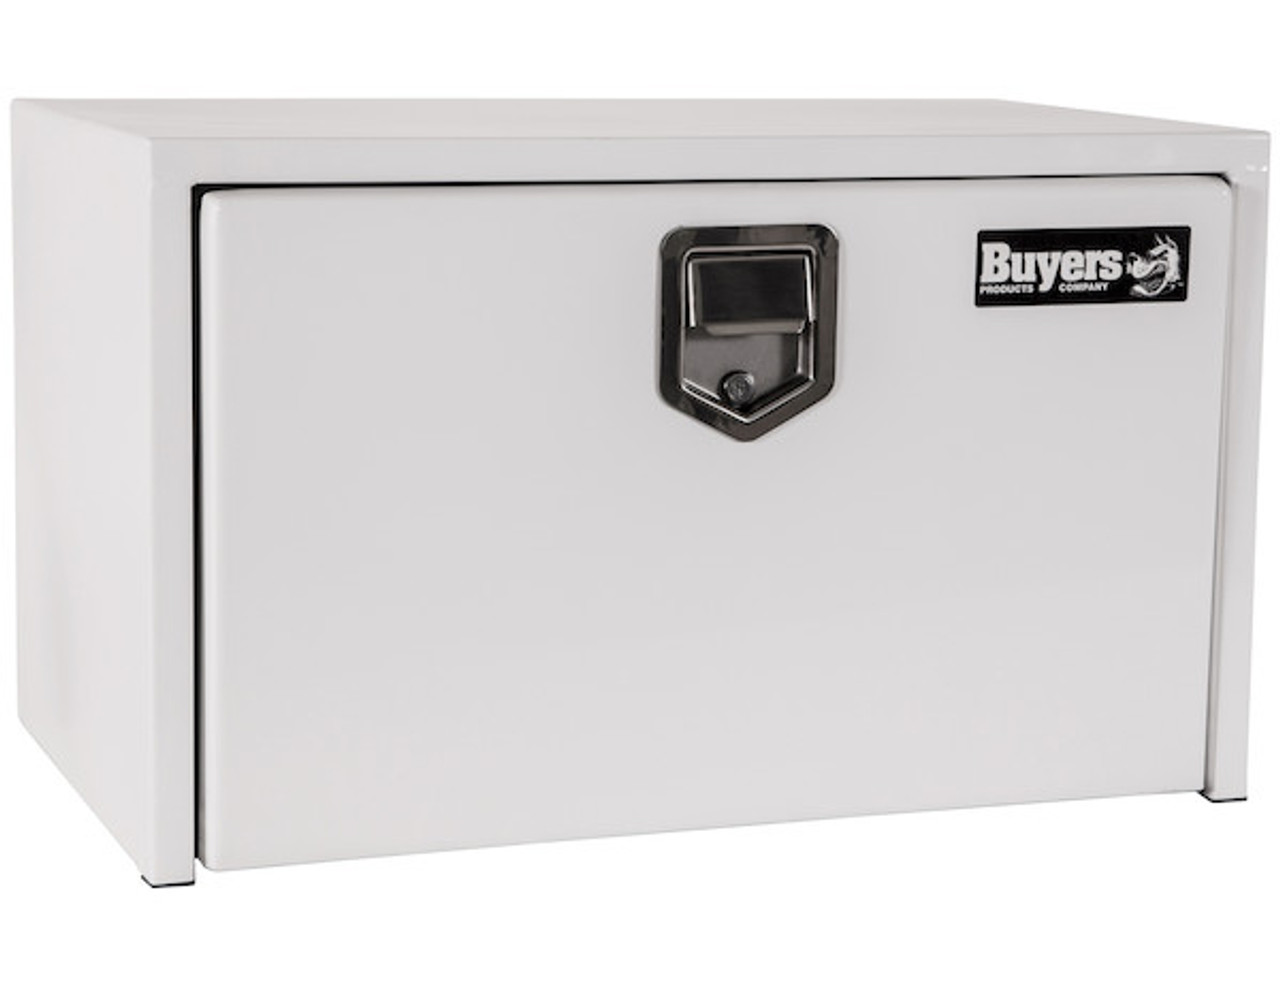 "1702203 BUYERS PRODUCTS WHITE STEEL UNDERBODY TRUCK TOOLBOX WITH PADDLE LATCH 18""HX18""DX30""W"